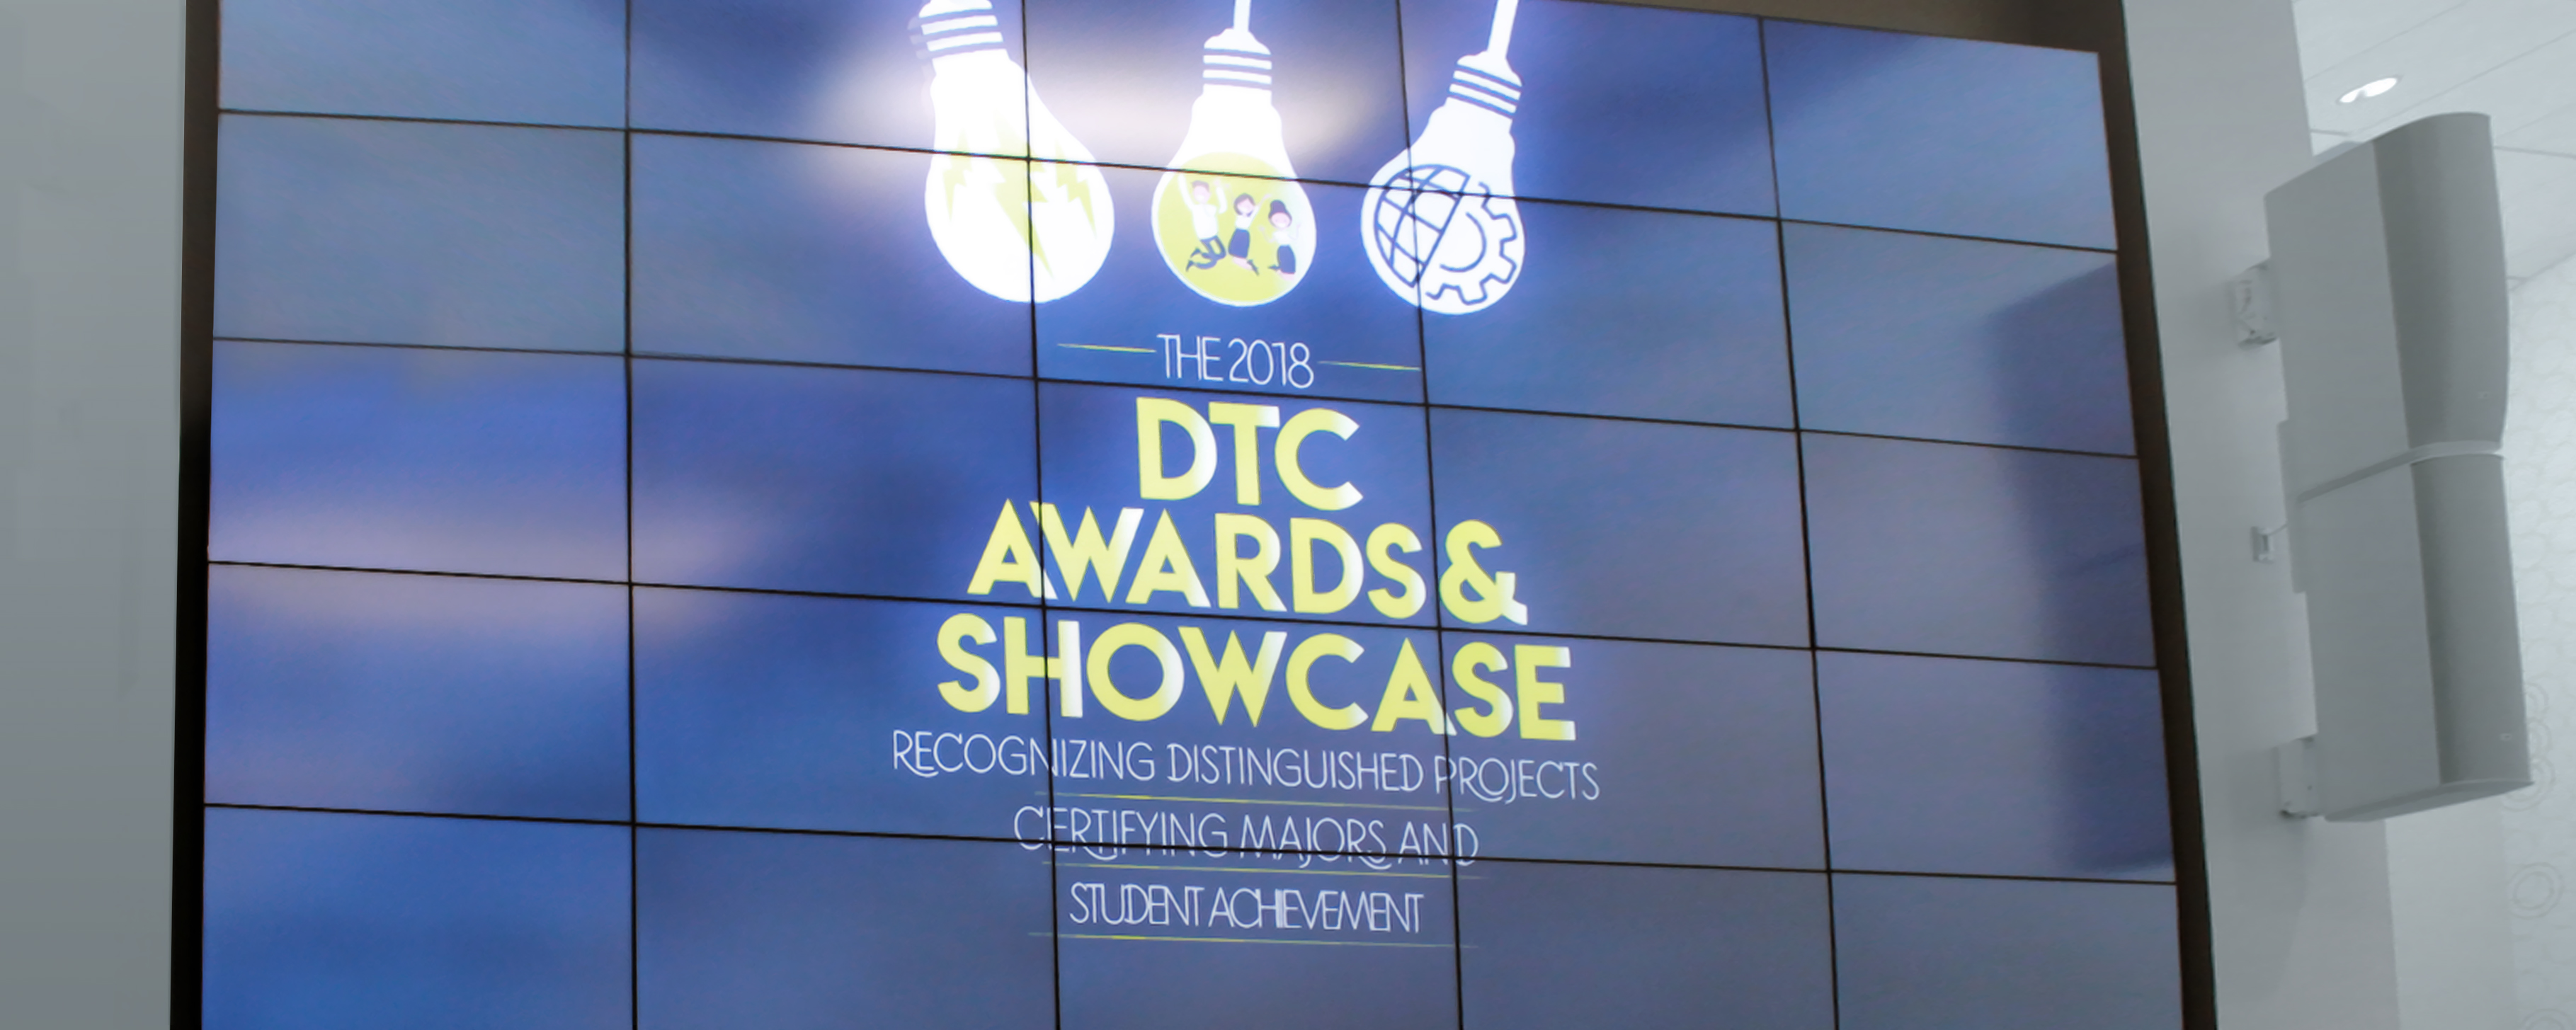 The Spark screen displays the 2018 Spring Showcase poster